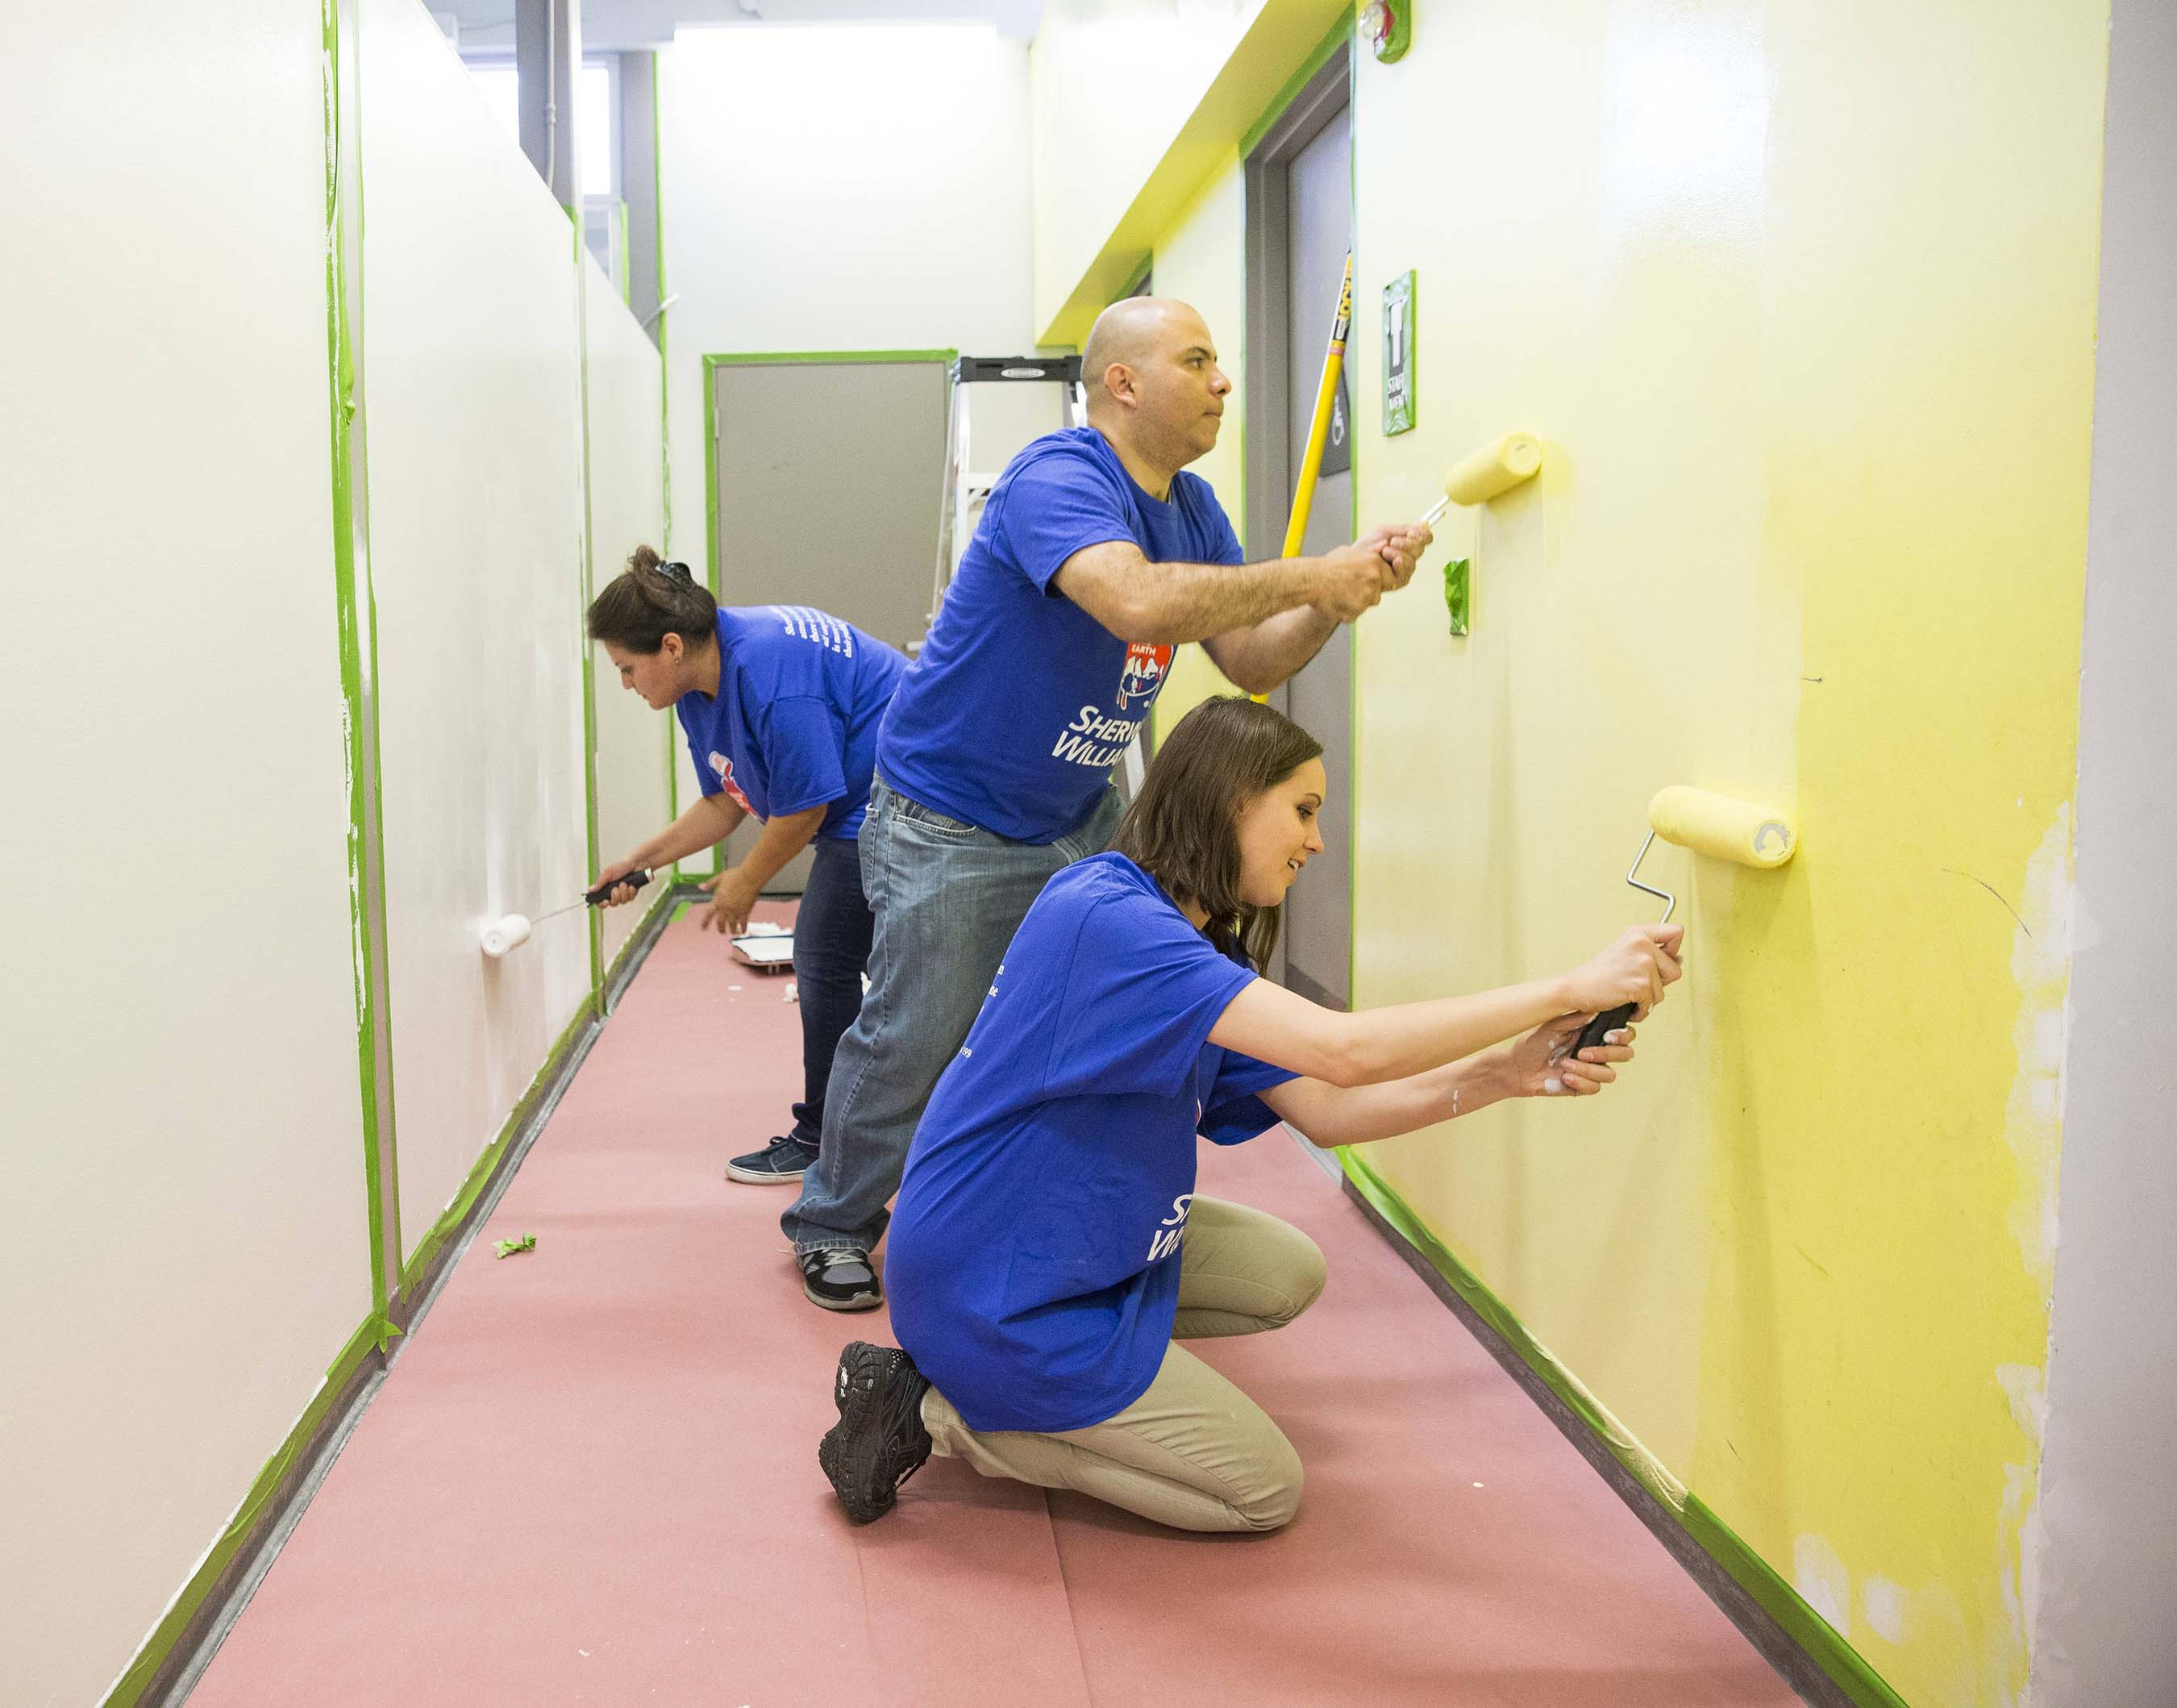 More than 275 deserving community organizations across North America are in for a colorful makeover, courtesy of Sherwin-Williams.